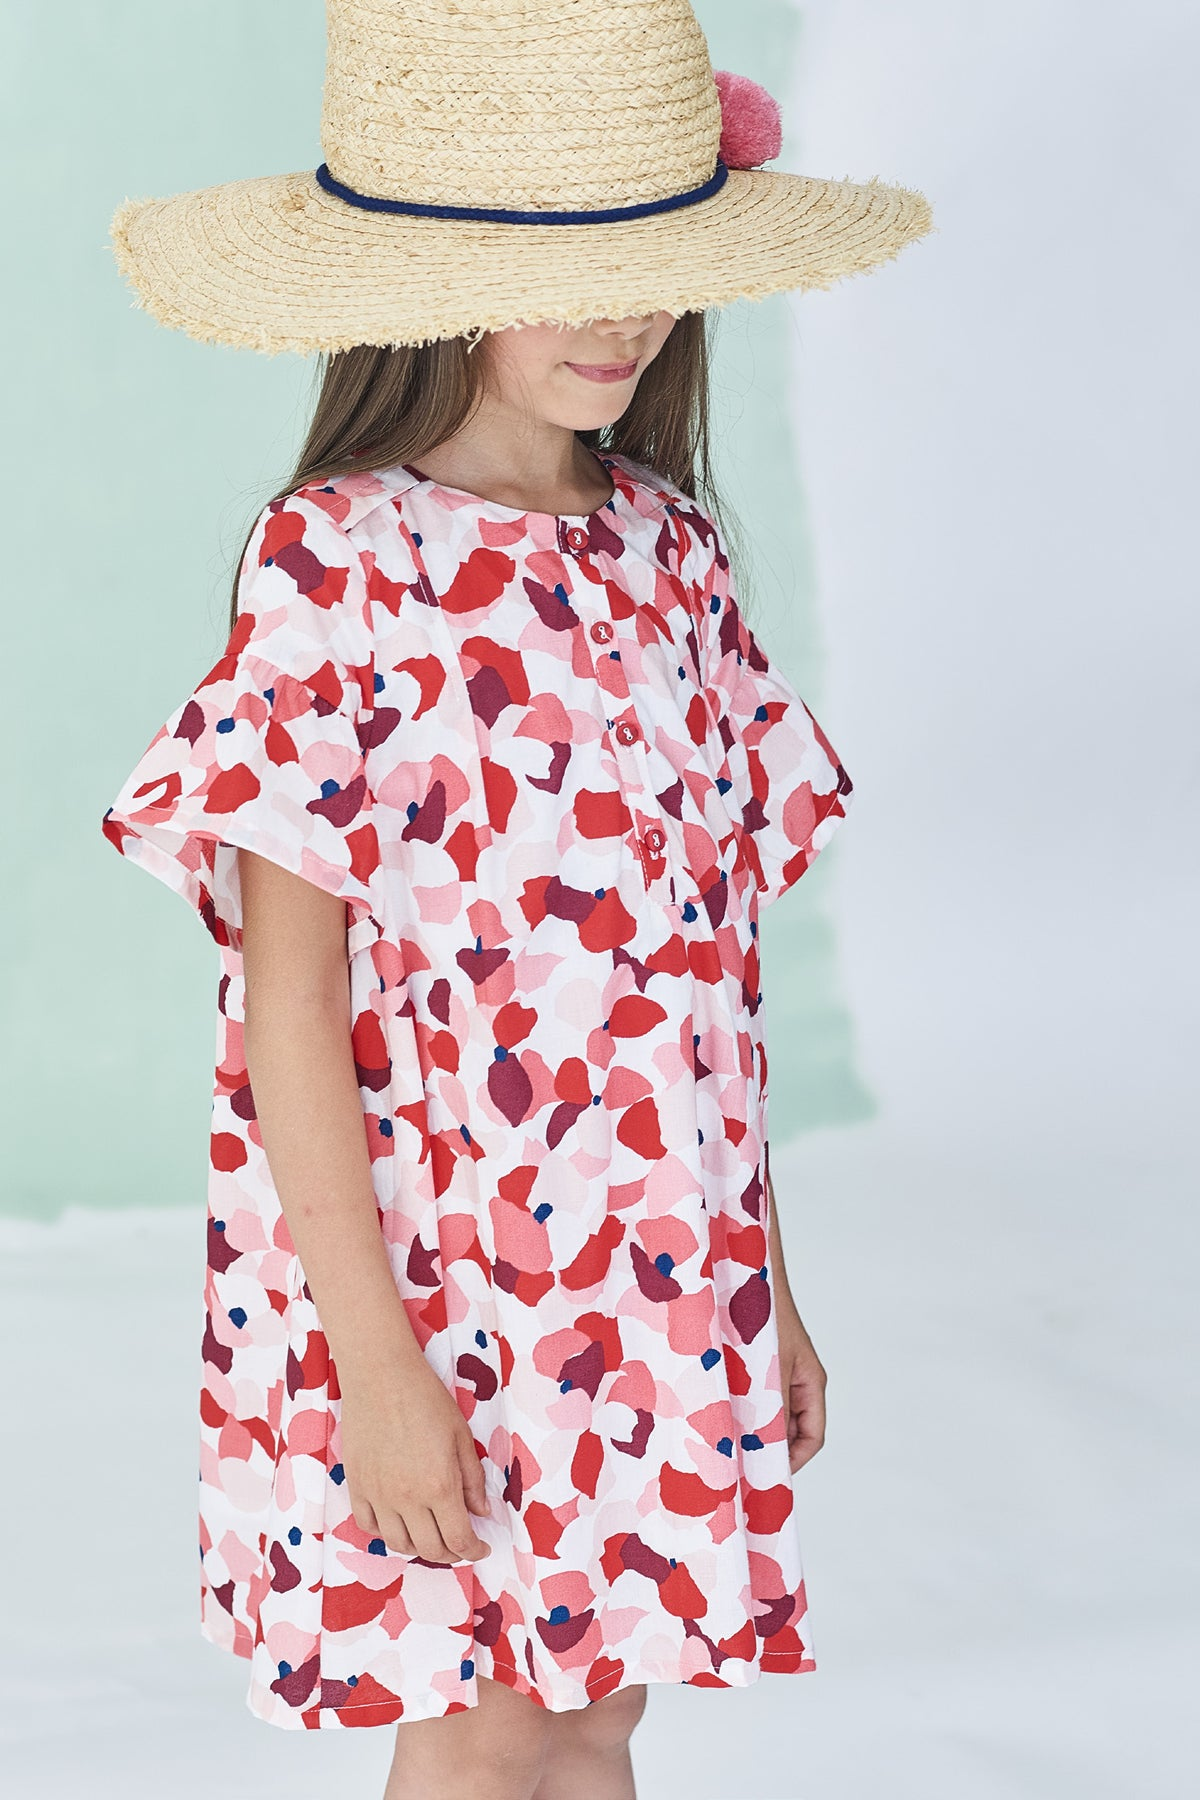 7717f8589 Jean Bourget Grenadine Dress - Mini Ruby